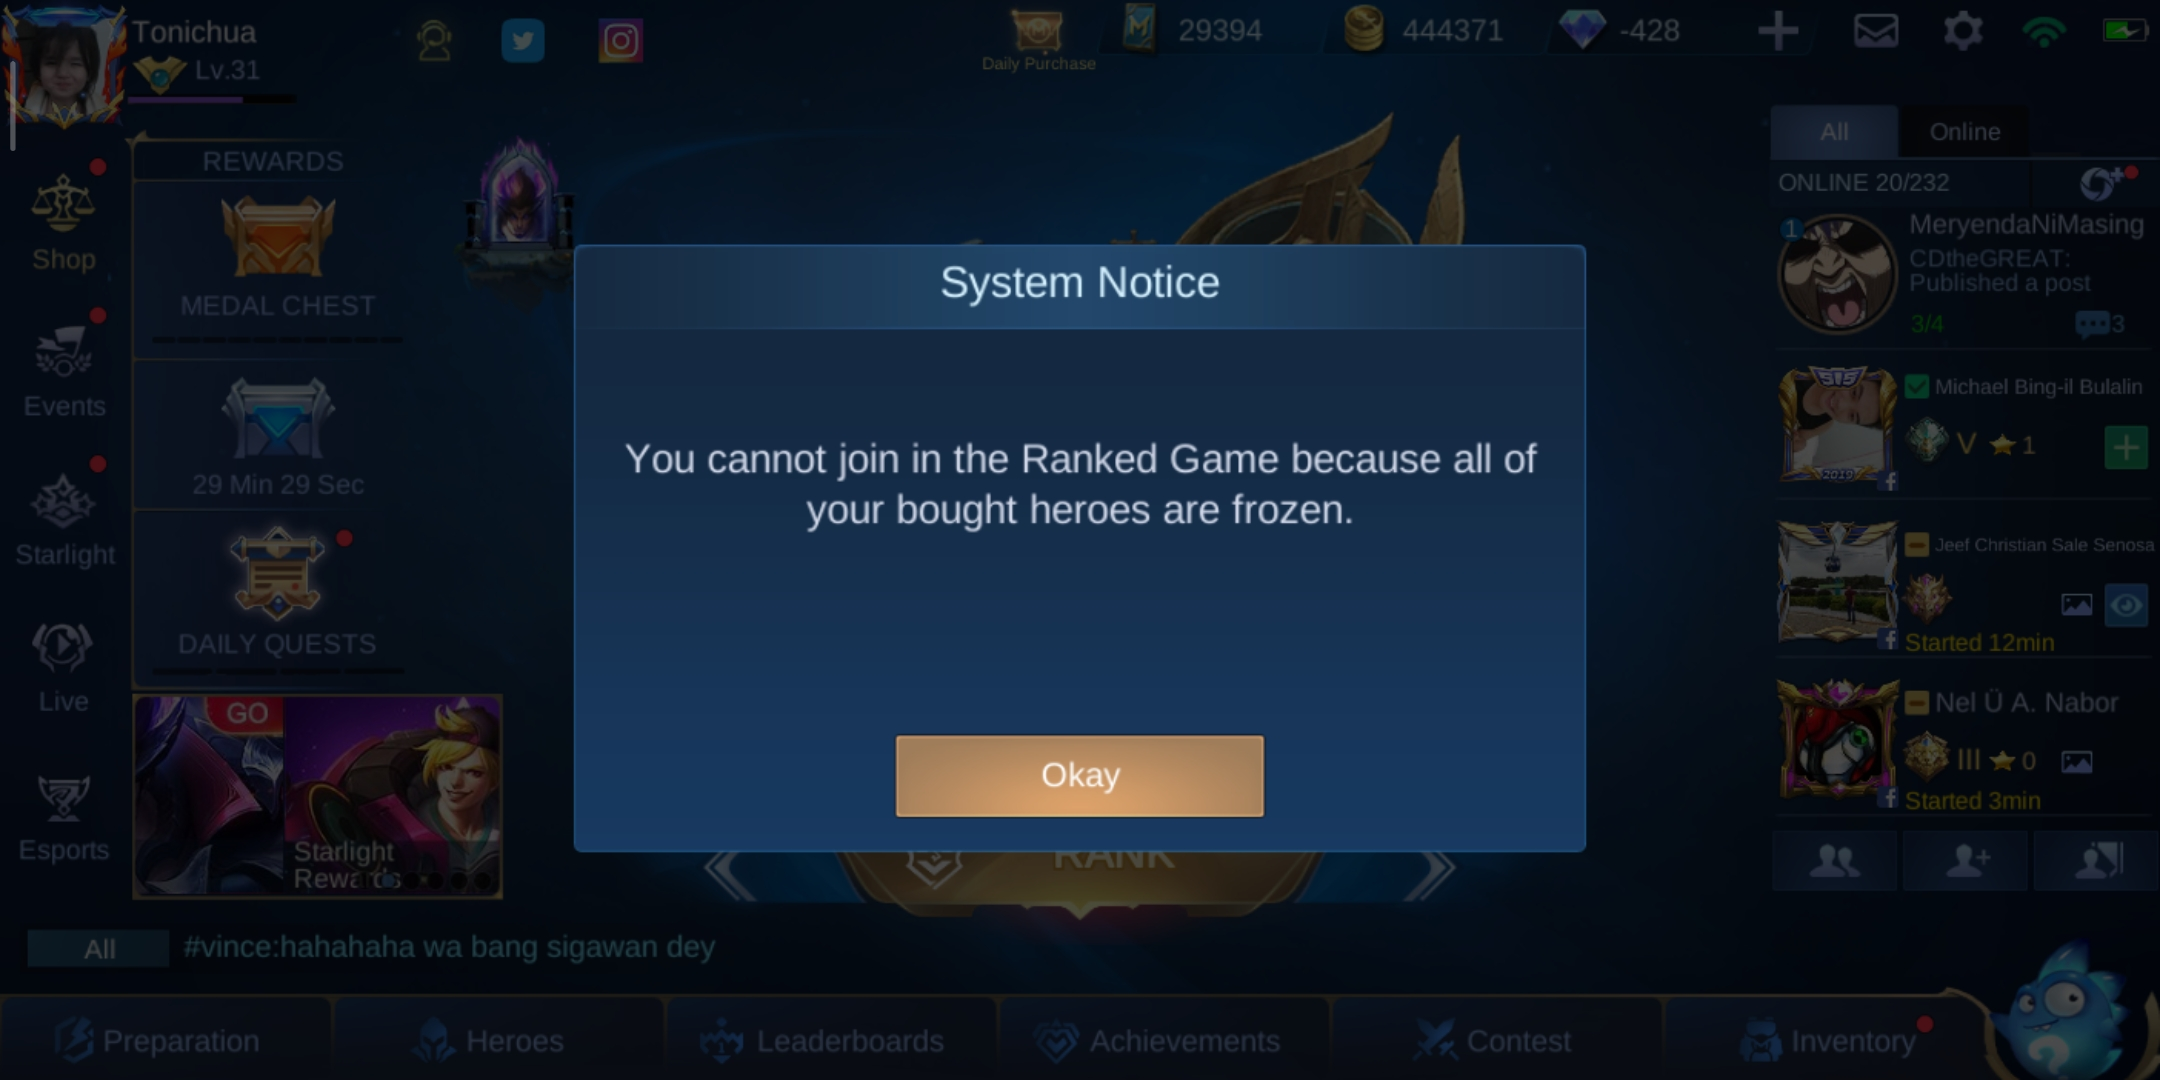 Frozen heroes and can't play rank